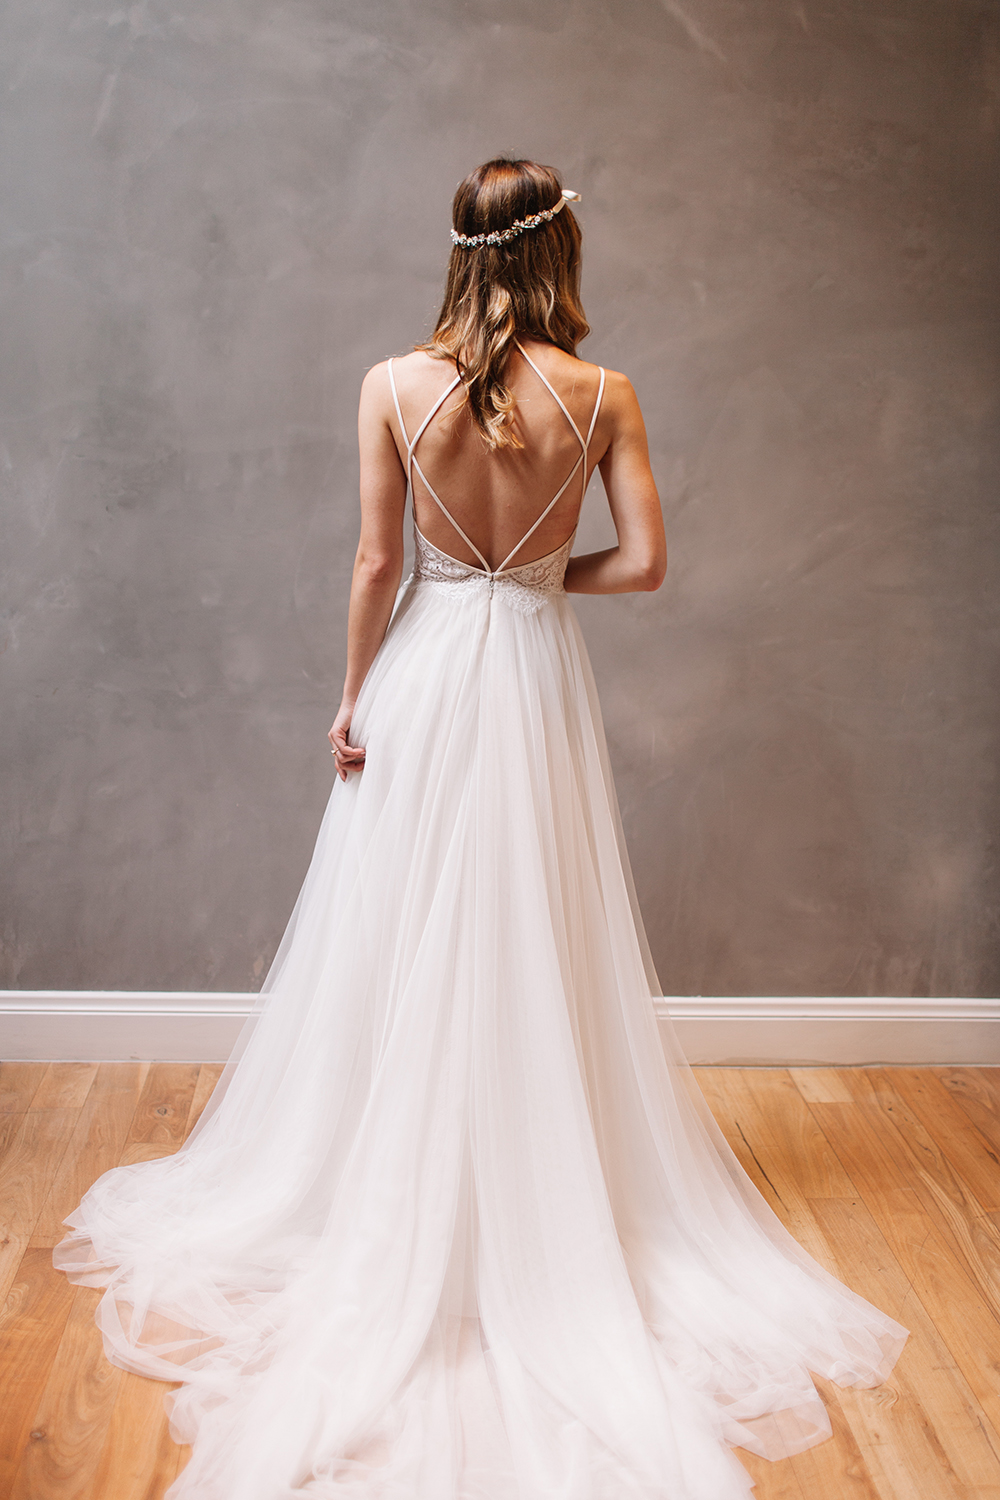 Sexy backless wedding dresses on sale